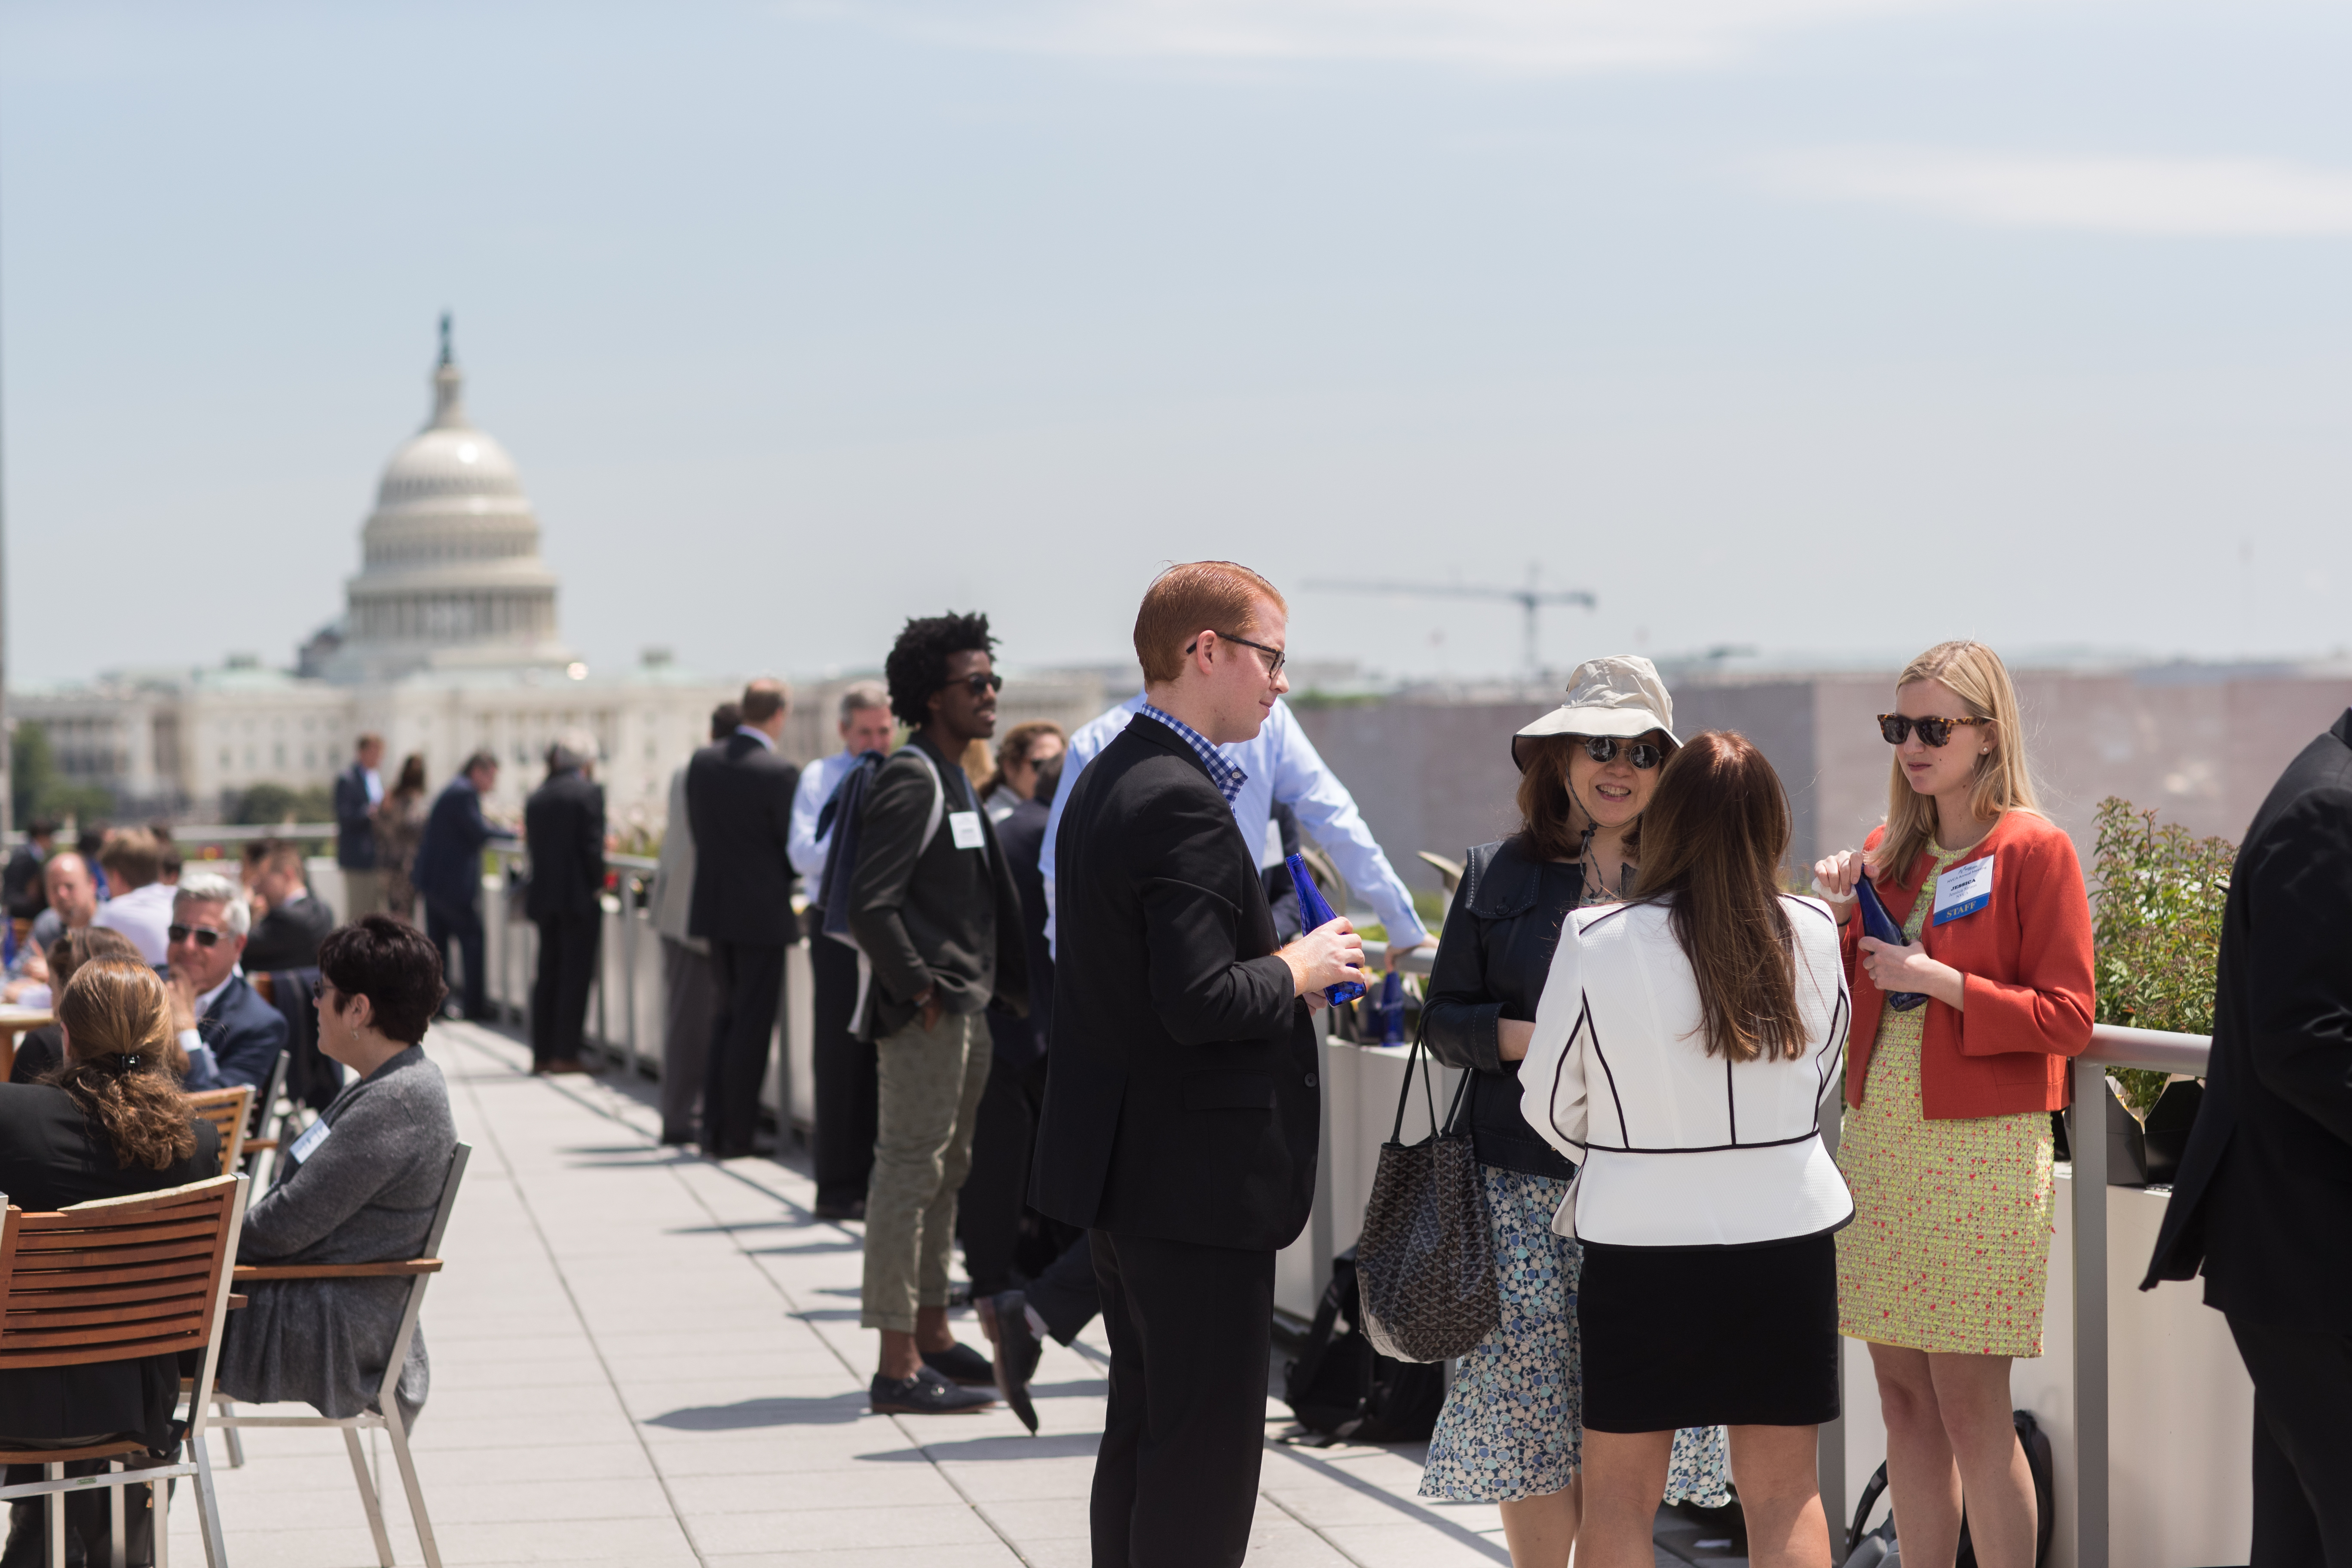 NVCA Brings VC and DC Together at Annual Meeting - NVCA